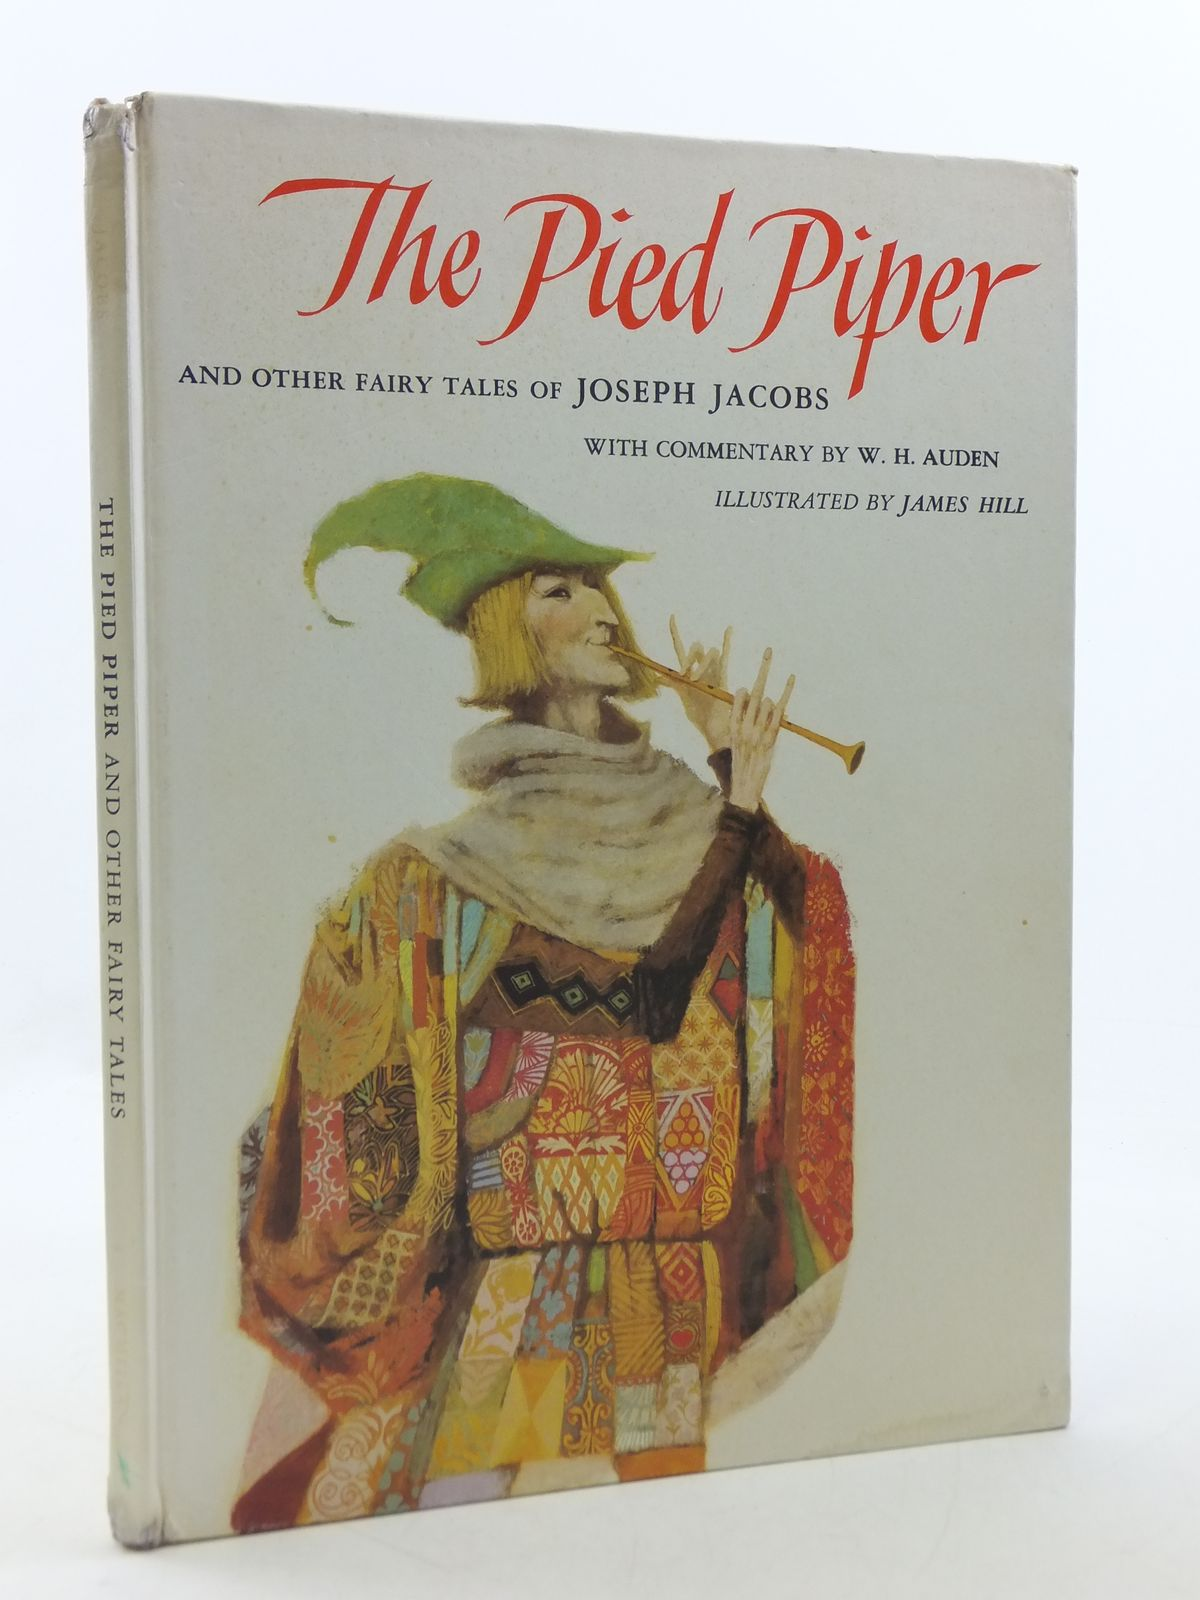 Photo of THE PIED PIPER AND OTHER FAIRY TALES OF JOSEPH JACOBS written by Jacobs, Joseph Auden, W.H. illustrated by Hill, James published by The Macmillan Company (STOCK CODE: 1605644)  for sale by Stella & Rose's Books